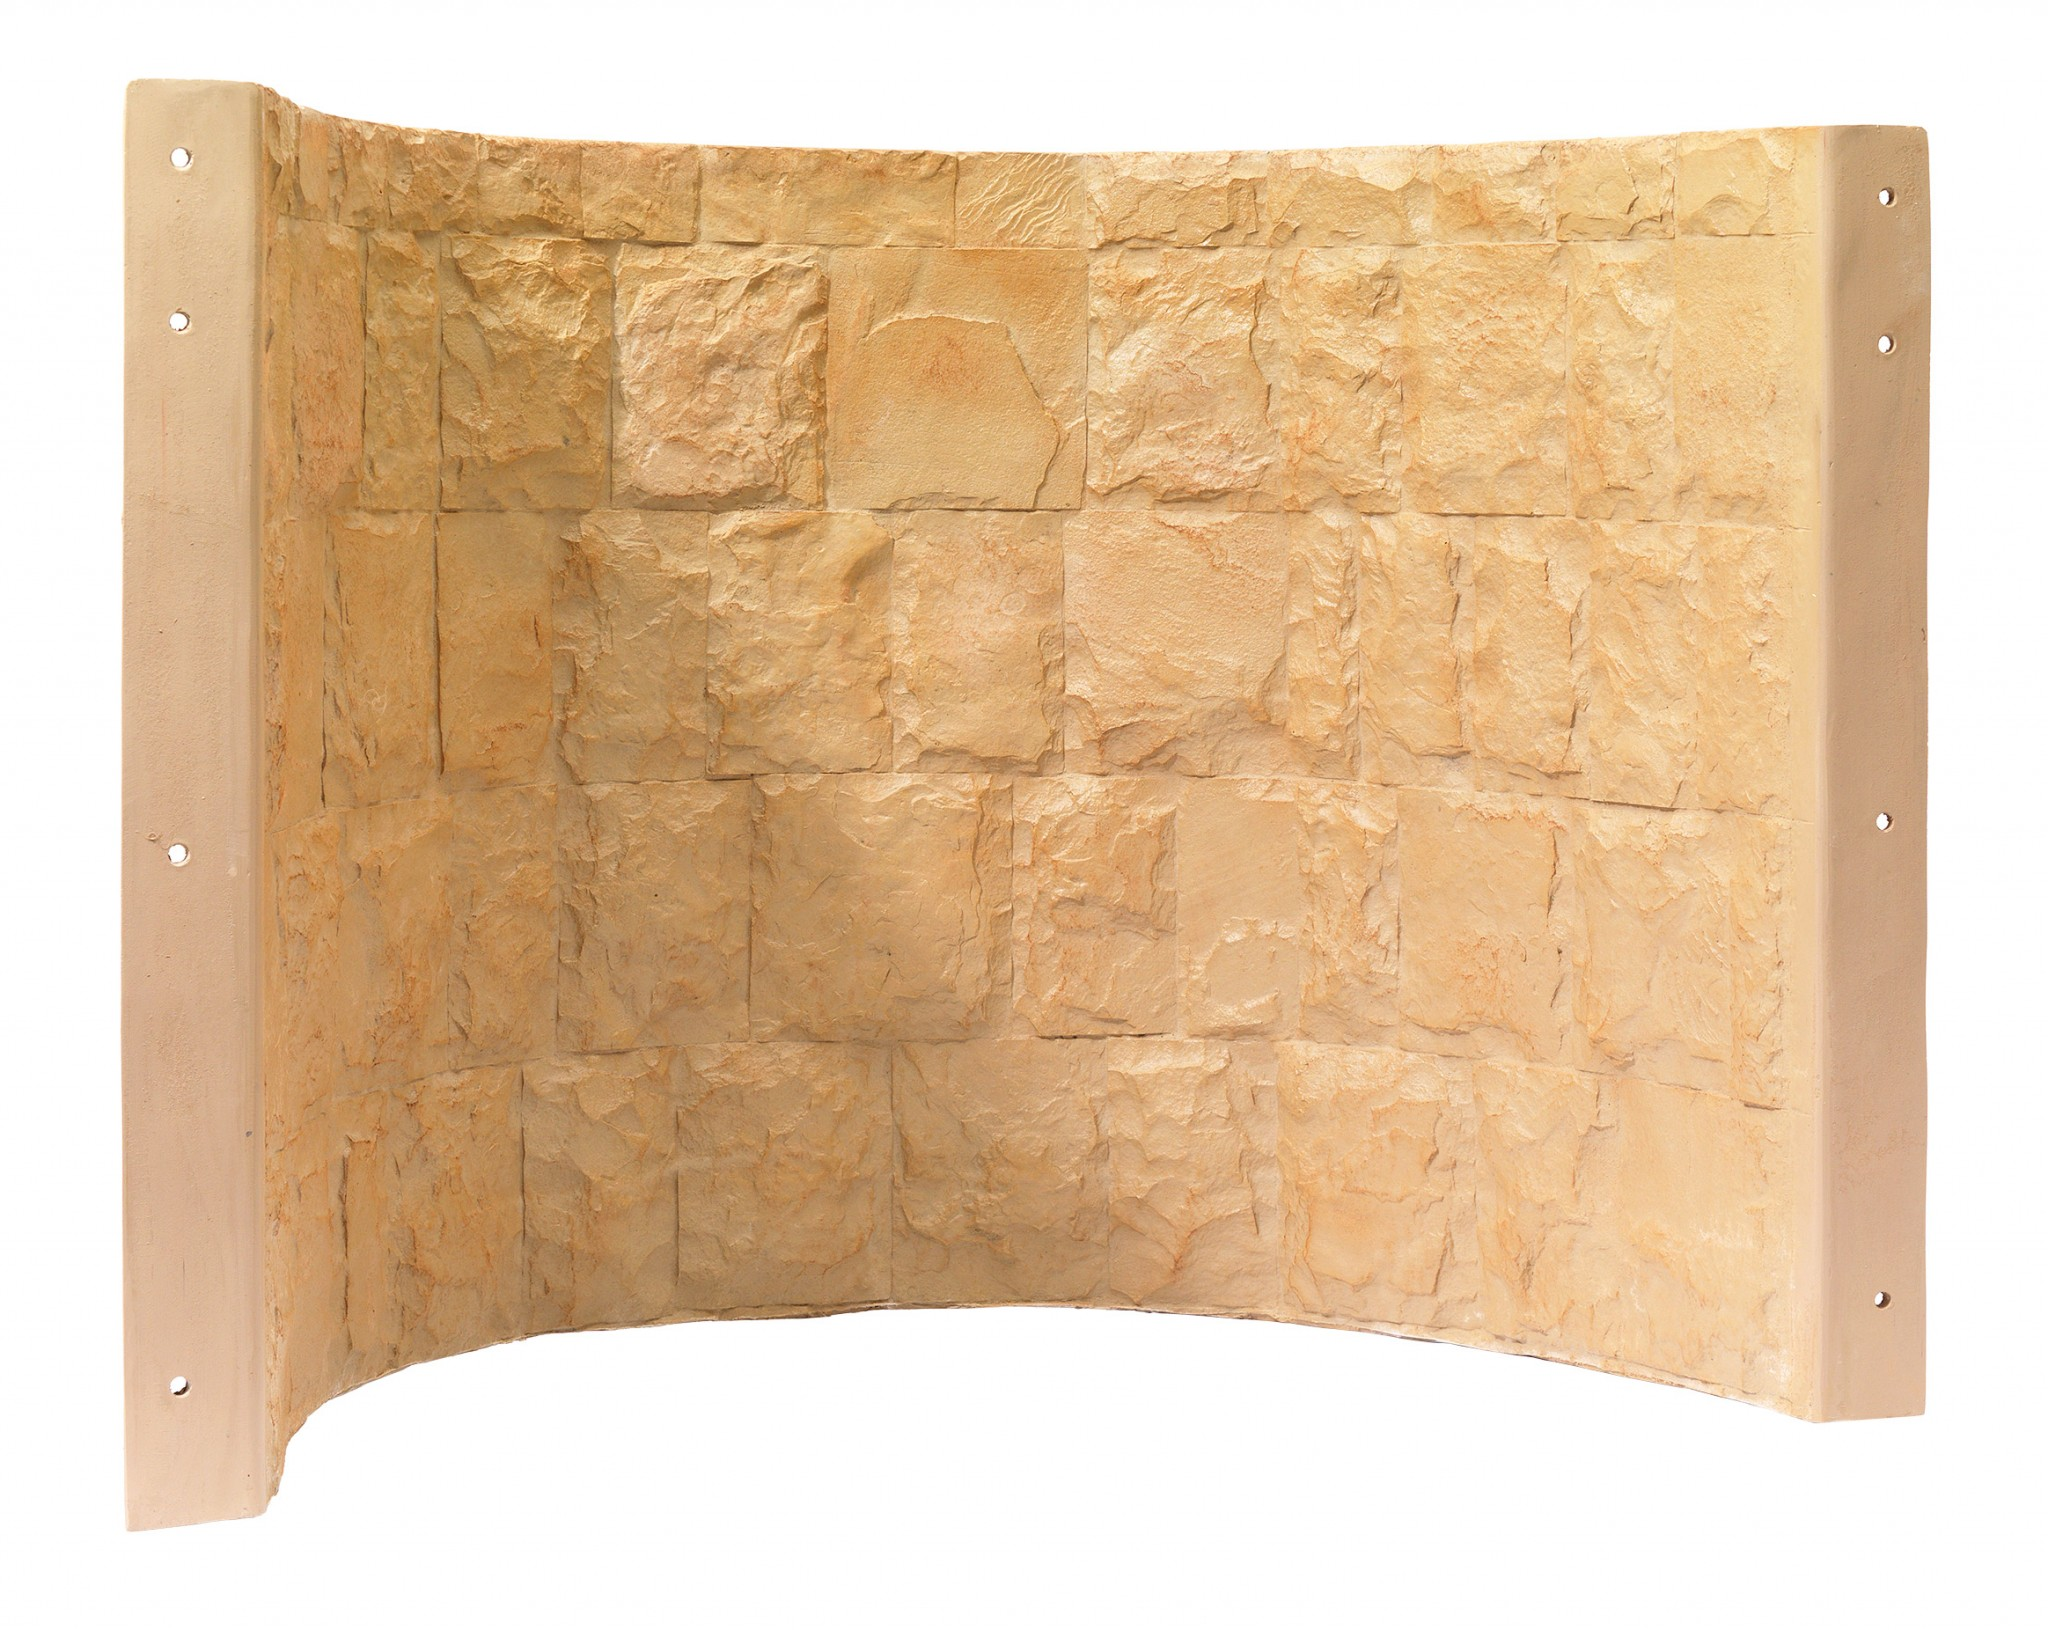 Tan tall brown faux stone Rockwell 42 series egress window well cover with steps built by RockWell egress window wells